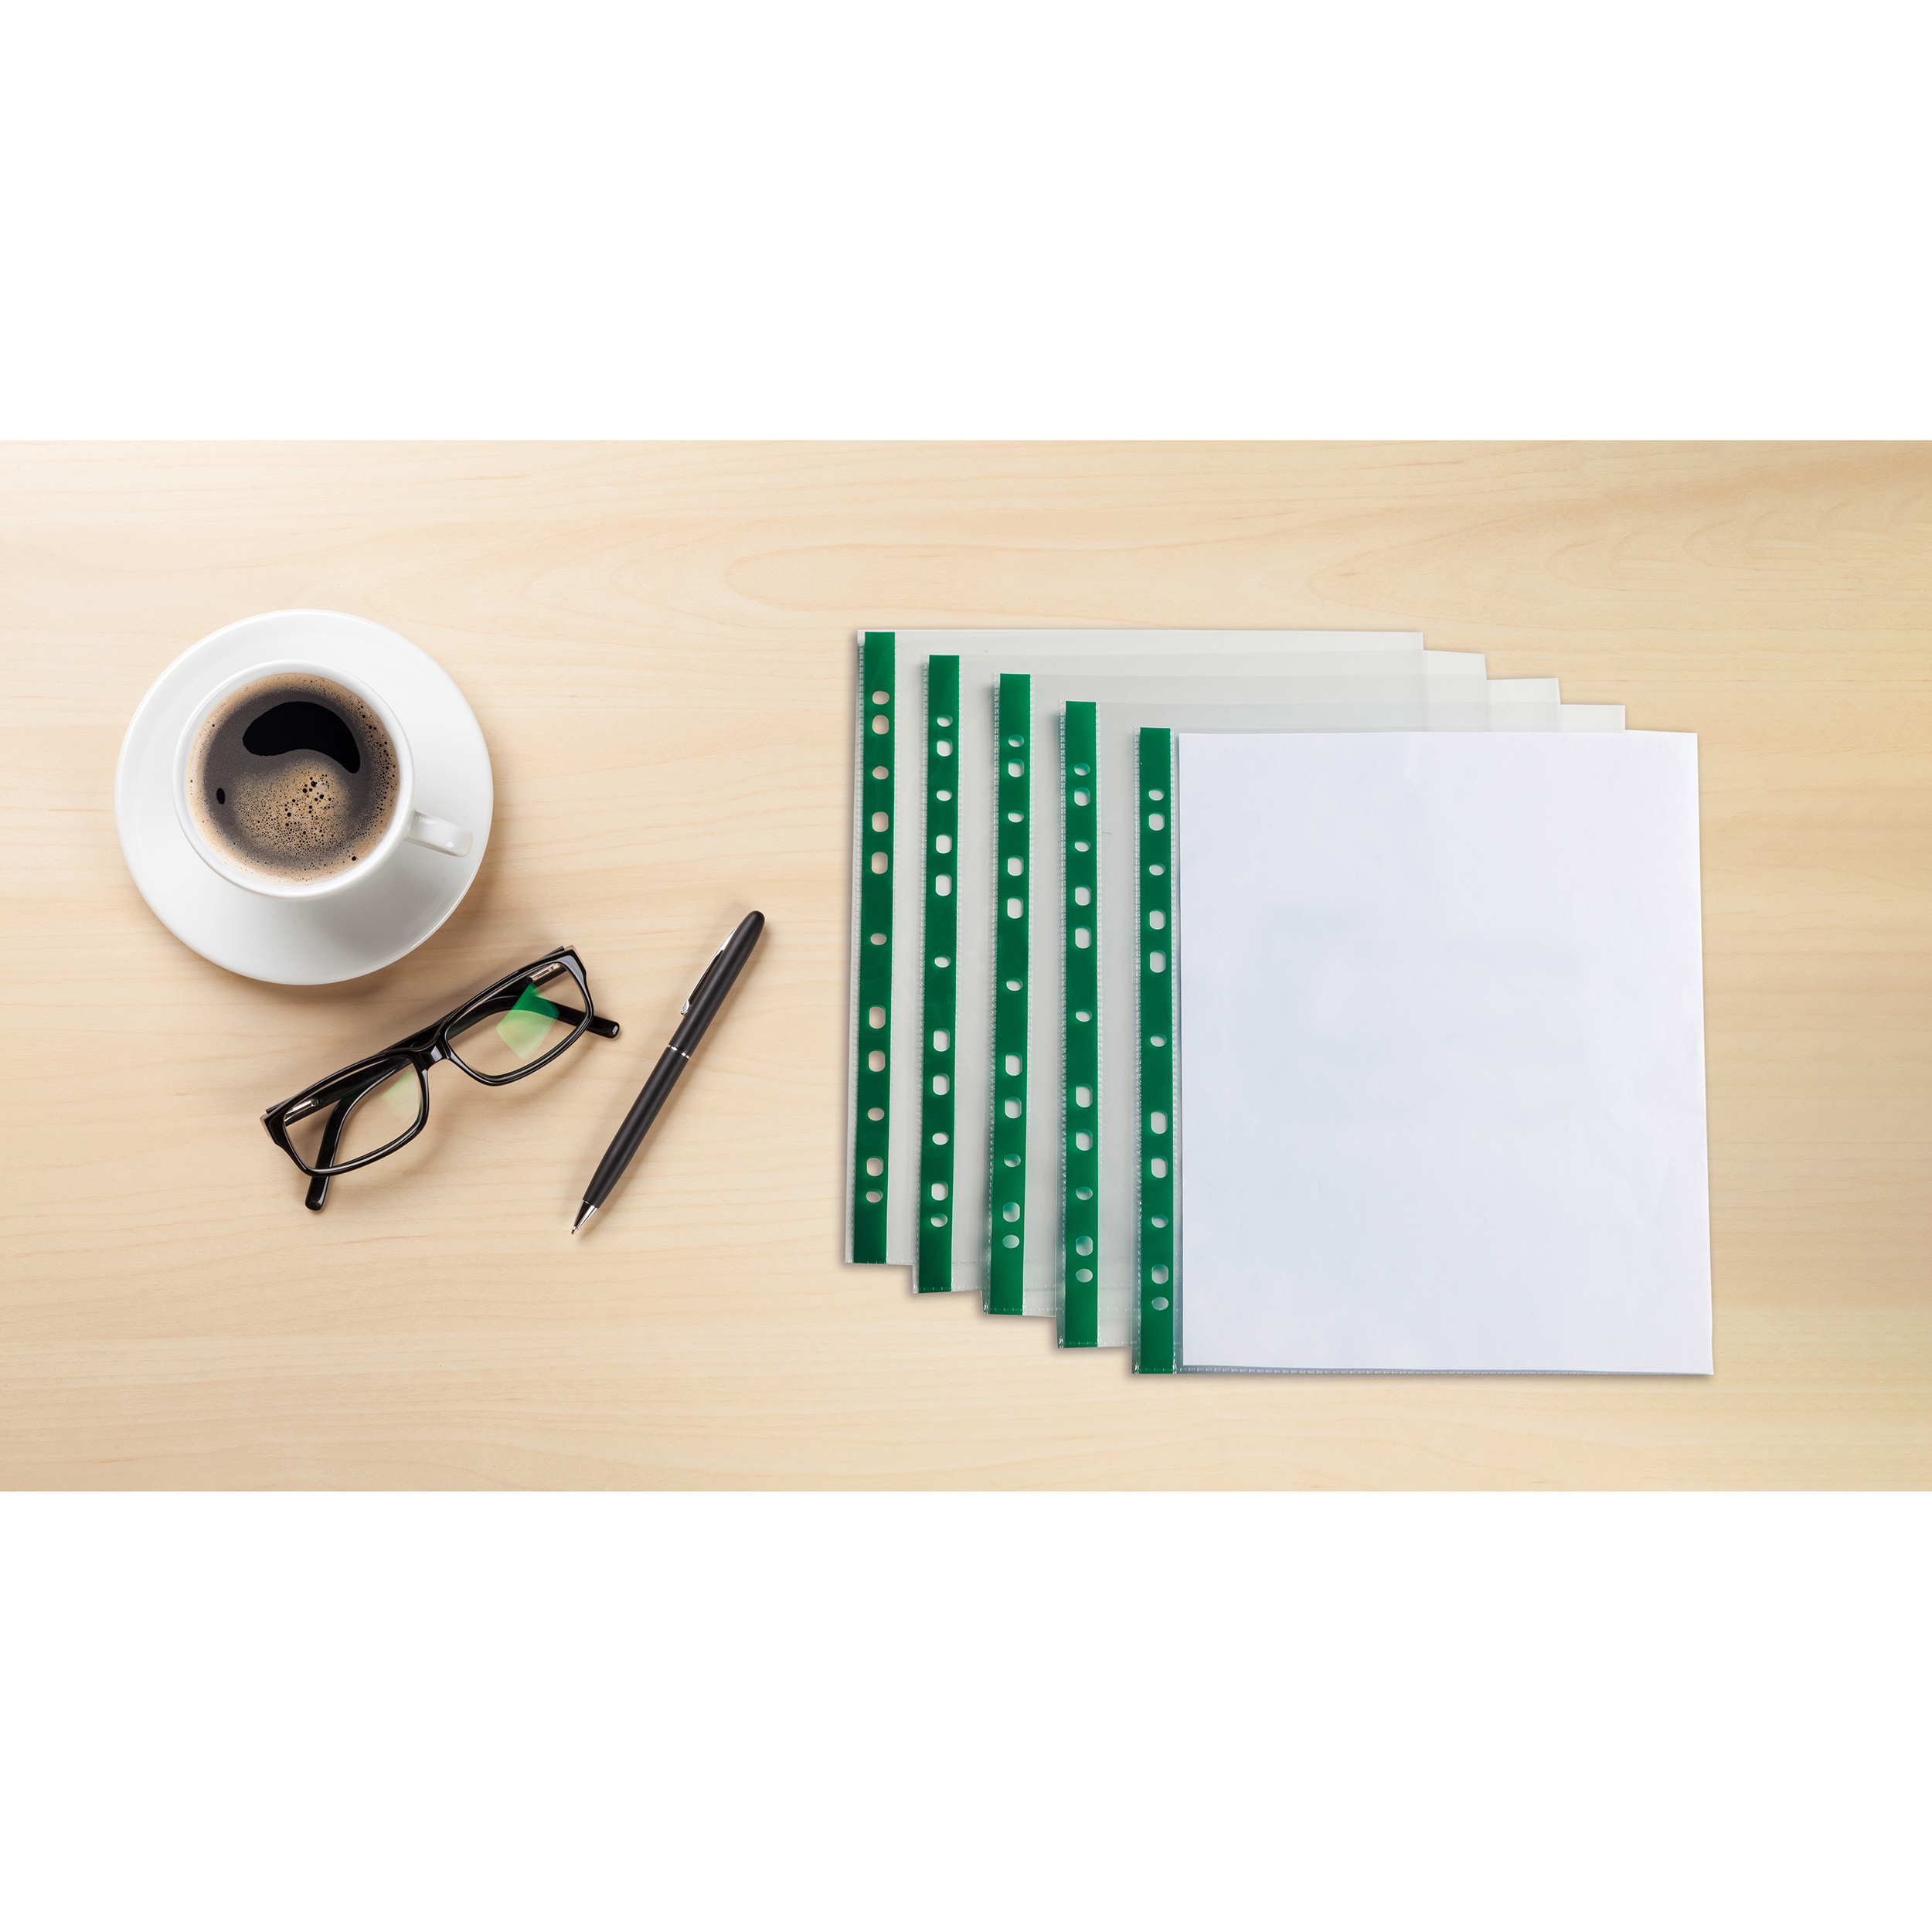 Elba Punched Pockets Glass Clear Green Strip A4 Ref 400002137_XX1220 [Pack 100] [2 for 1] Jan 12/20